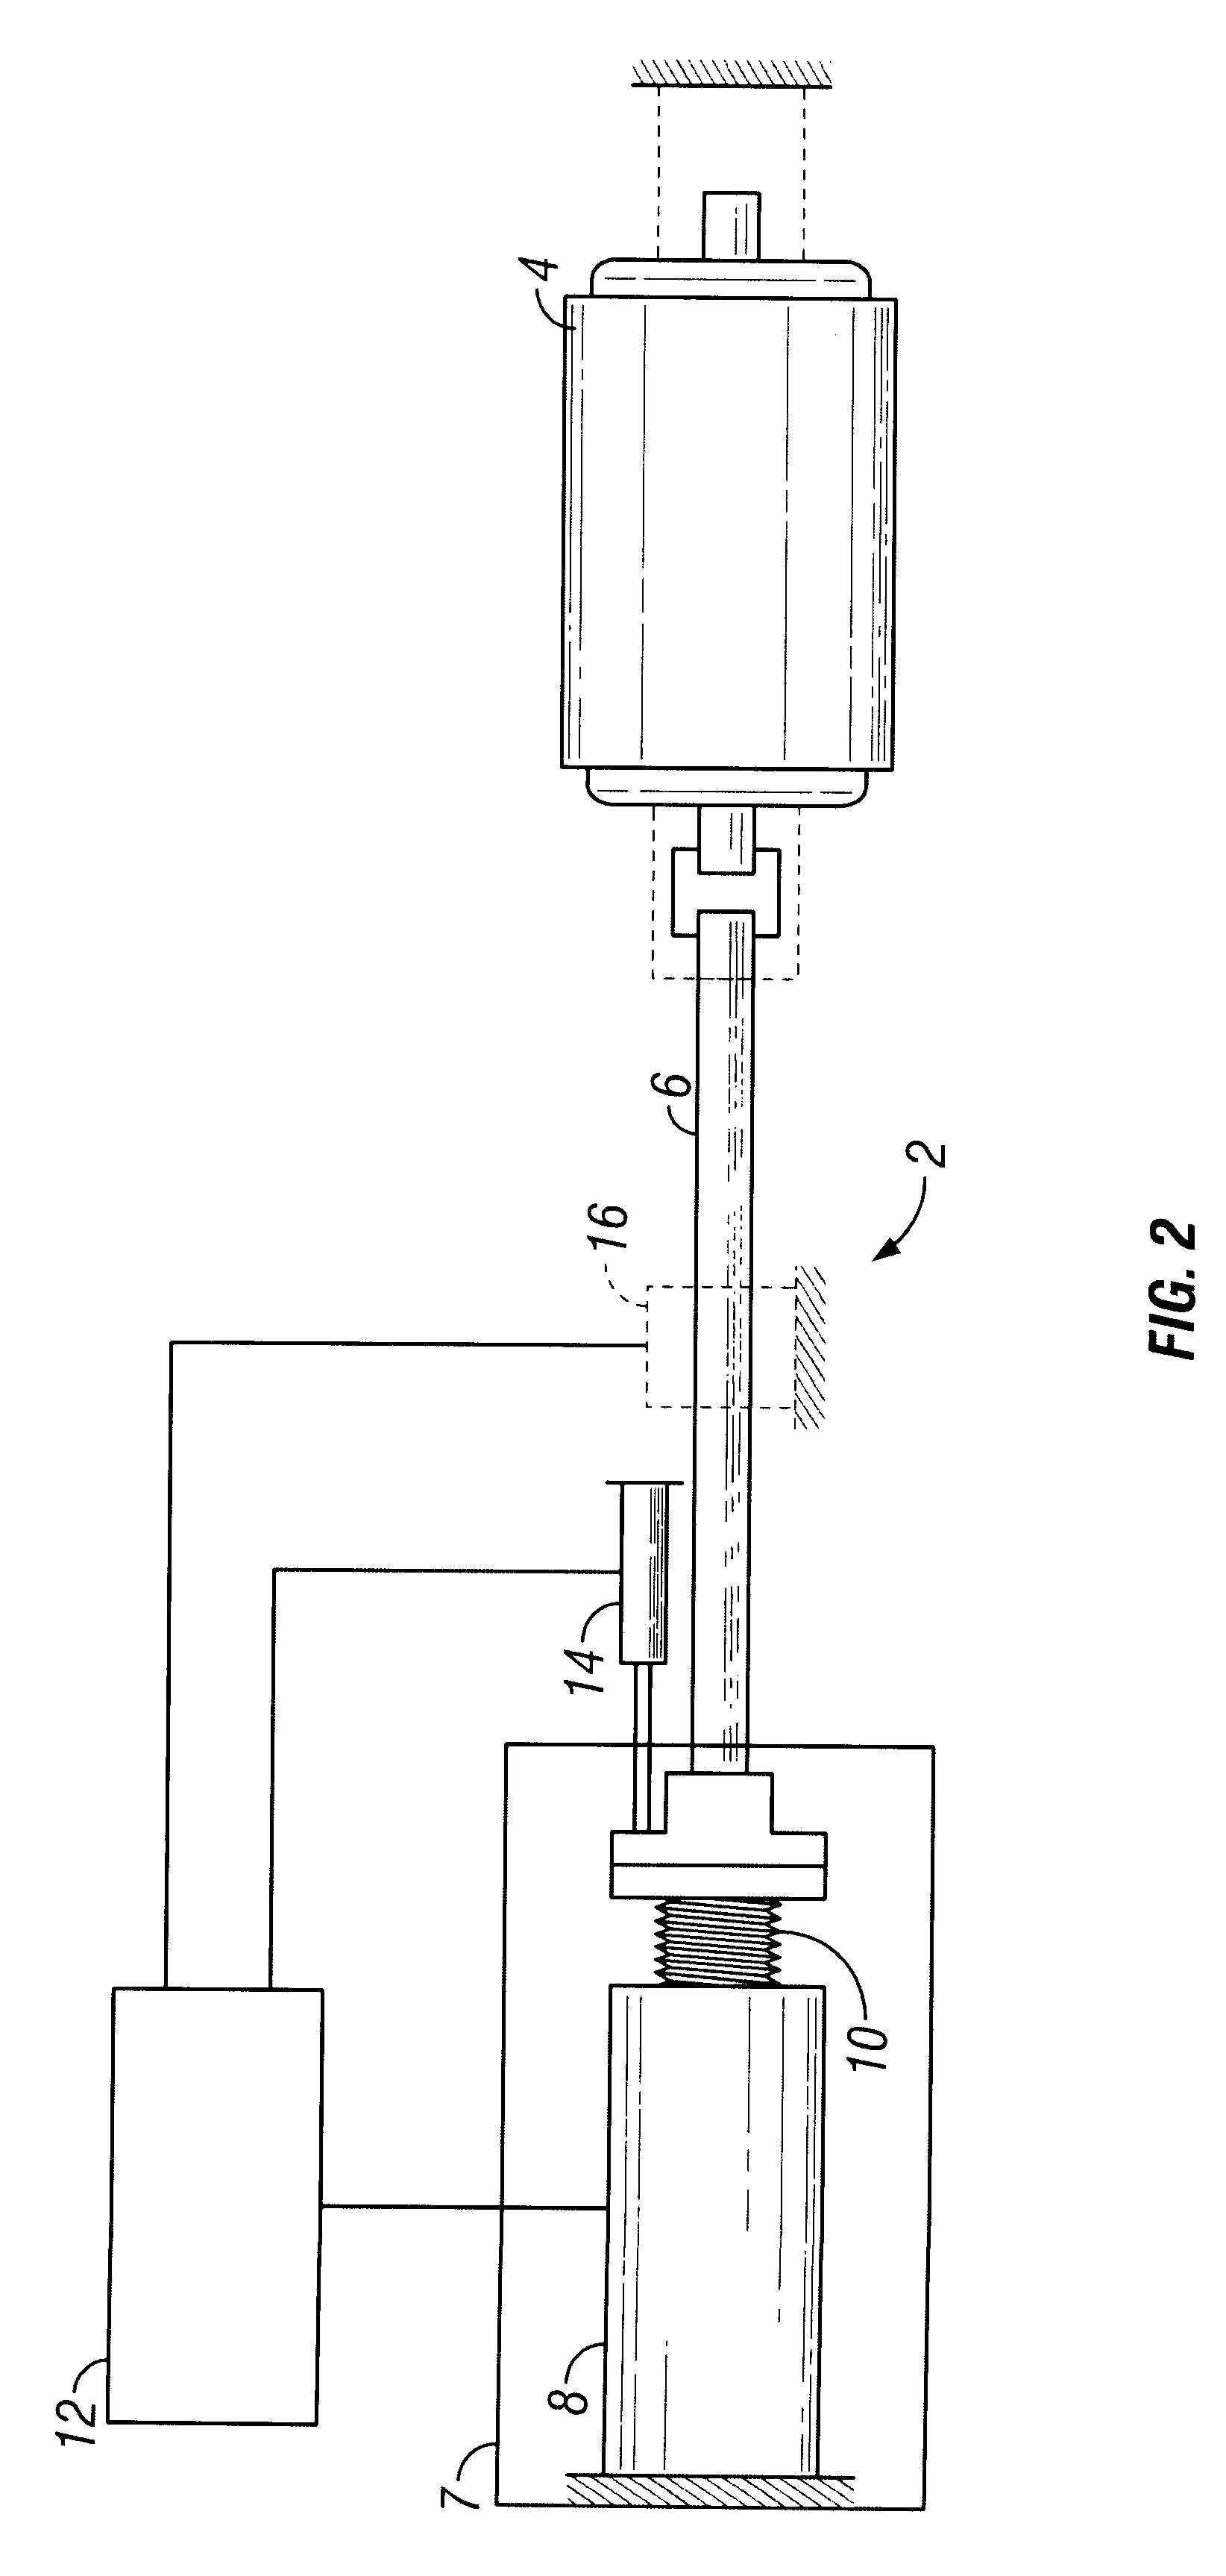 Patent Us6538347 Electrical Switchgear With Synchronous Control Figure 2 Pushbutton Closed Circuit Current Flows Drawing